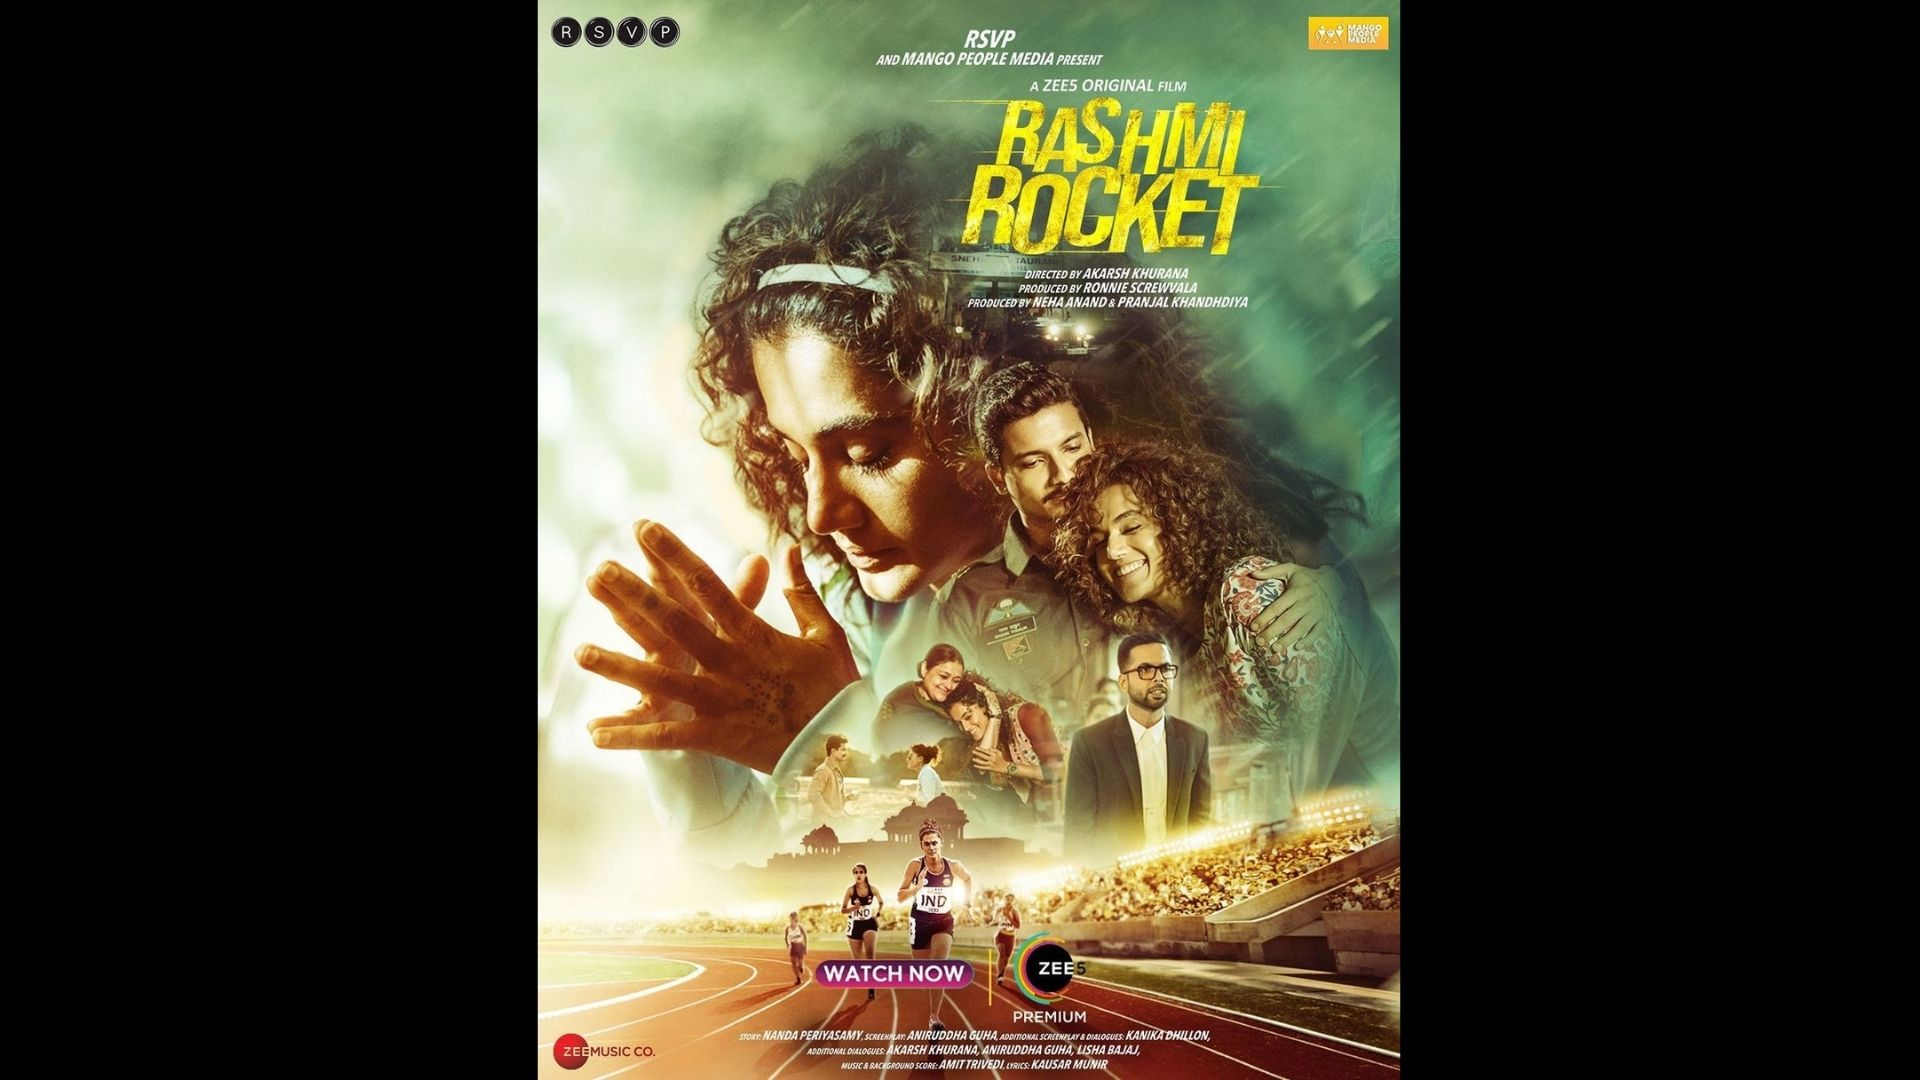 Rashmi Rocket: Taapsee Pannu Starrer Recieves Rave Reviews From All Across The Globe